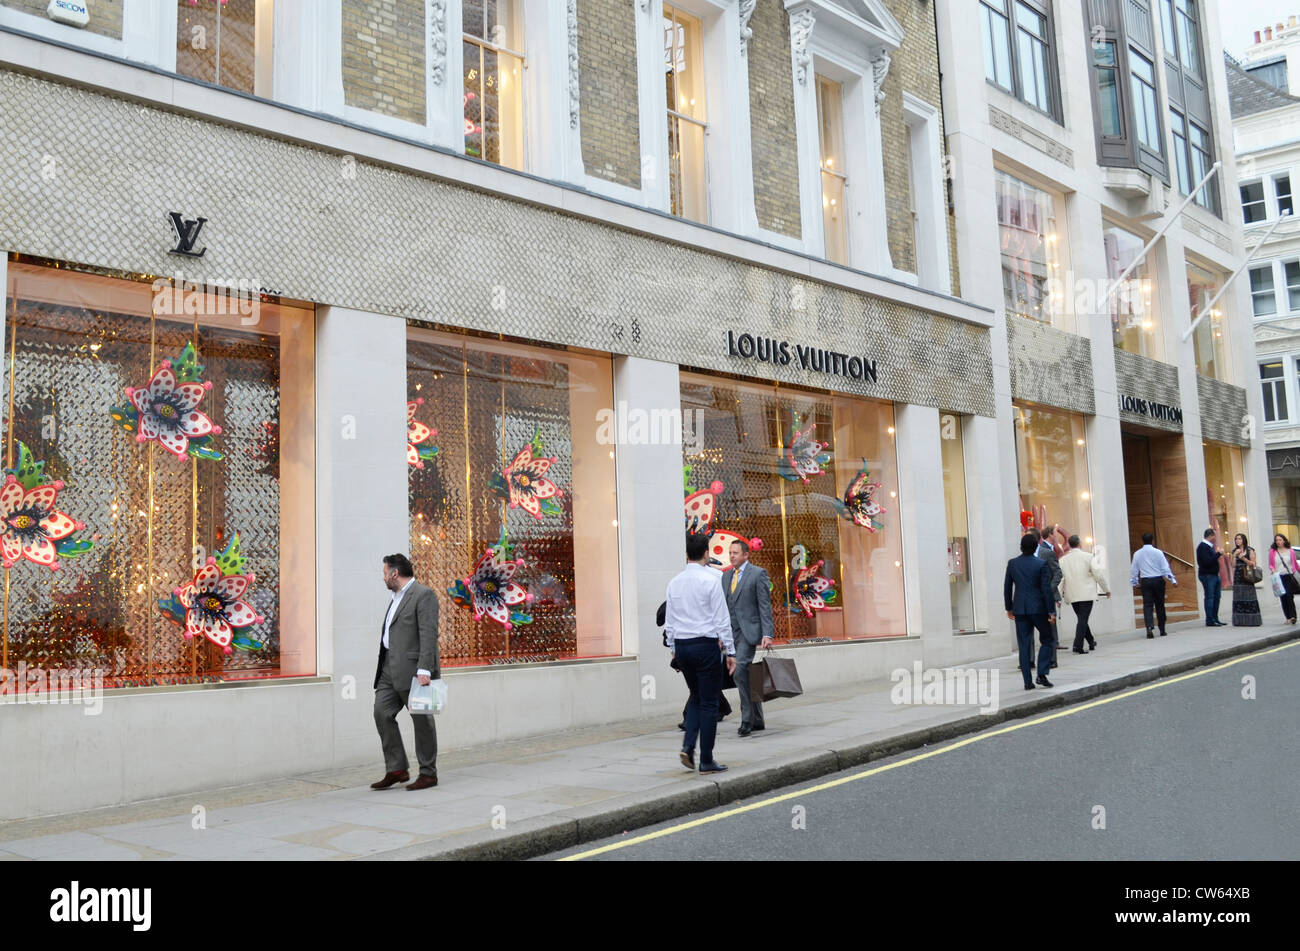 Louis Vuitton Mayfair store front - Stock Image